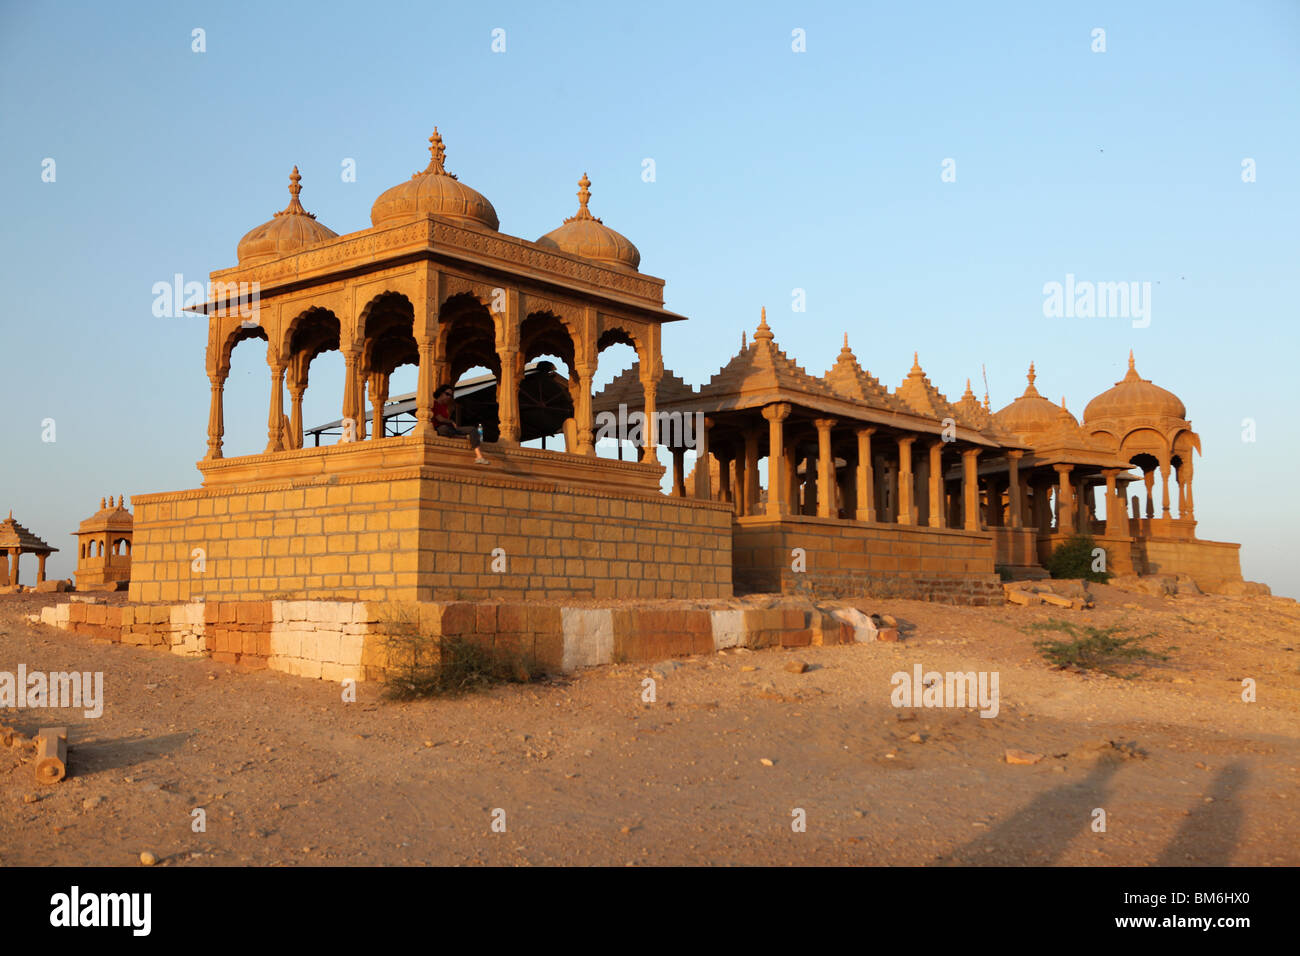 The Royal Cenotaphs or sunset point in Jaisalmer, Rajasthan, India. - Stock Image